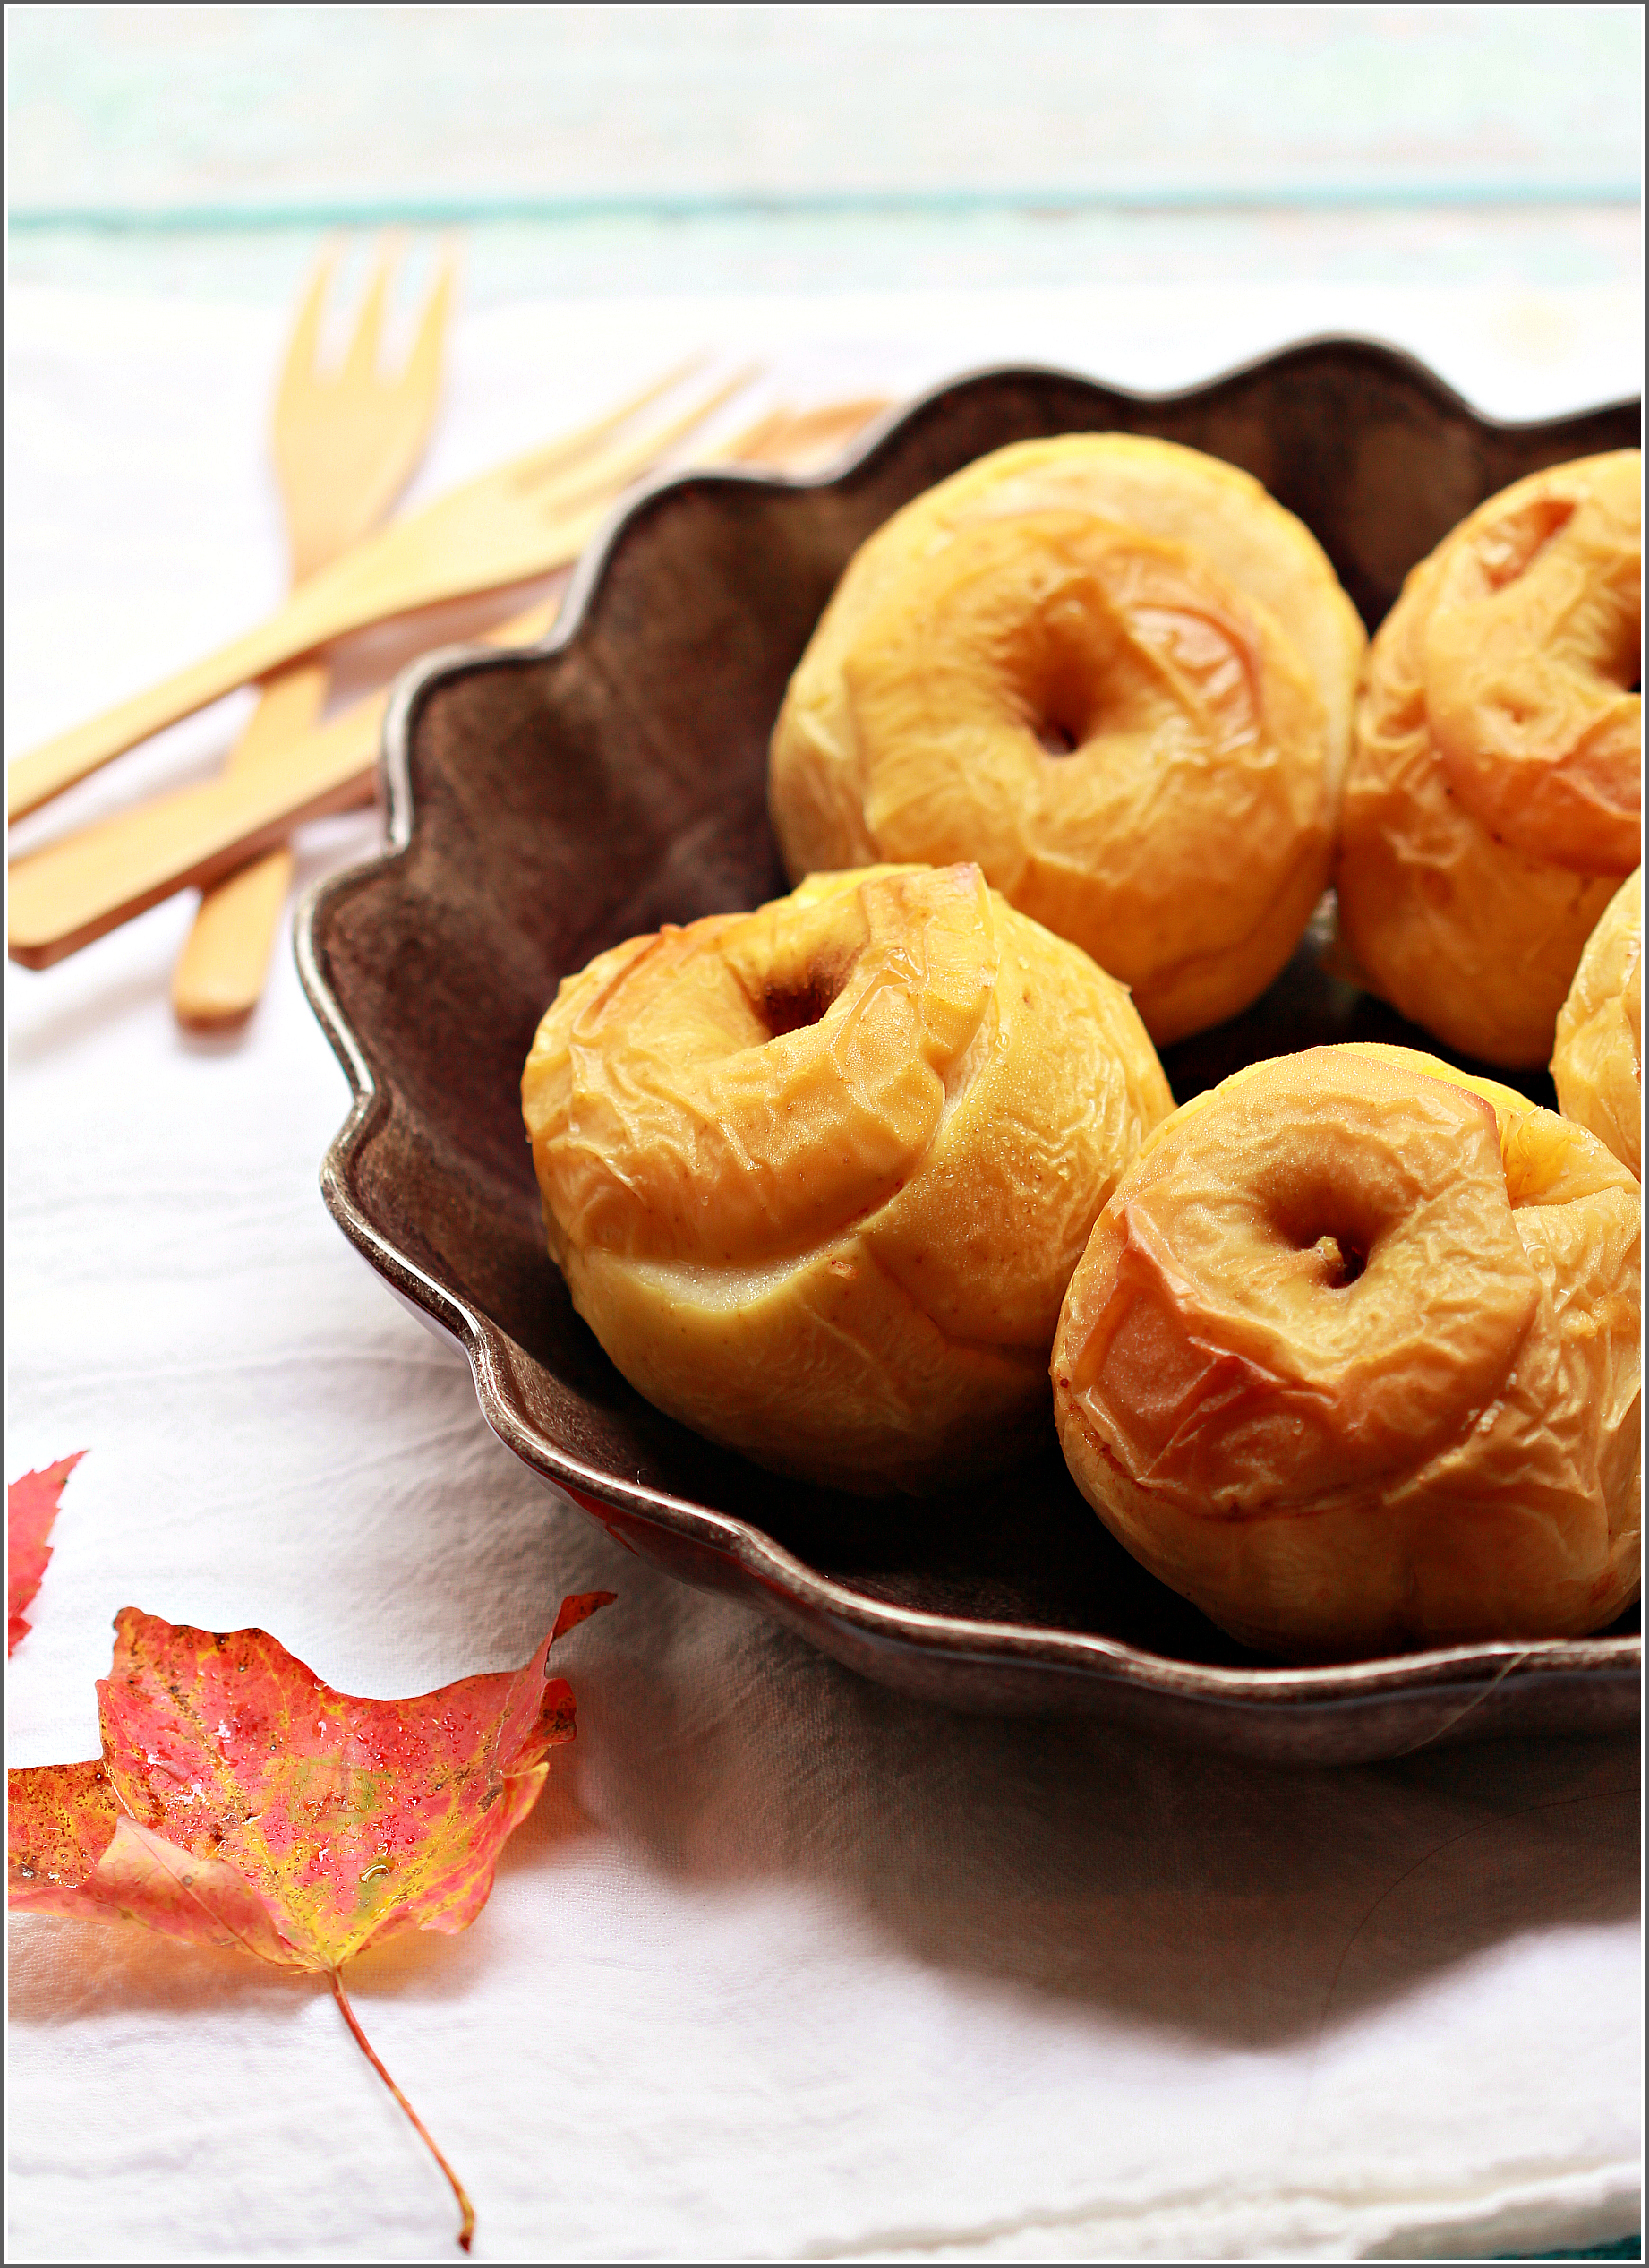 Baked Apples in with Leaf and Forks by Dena T